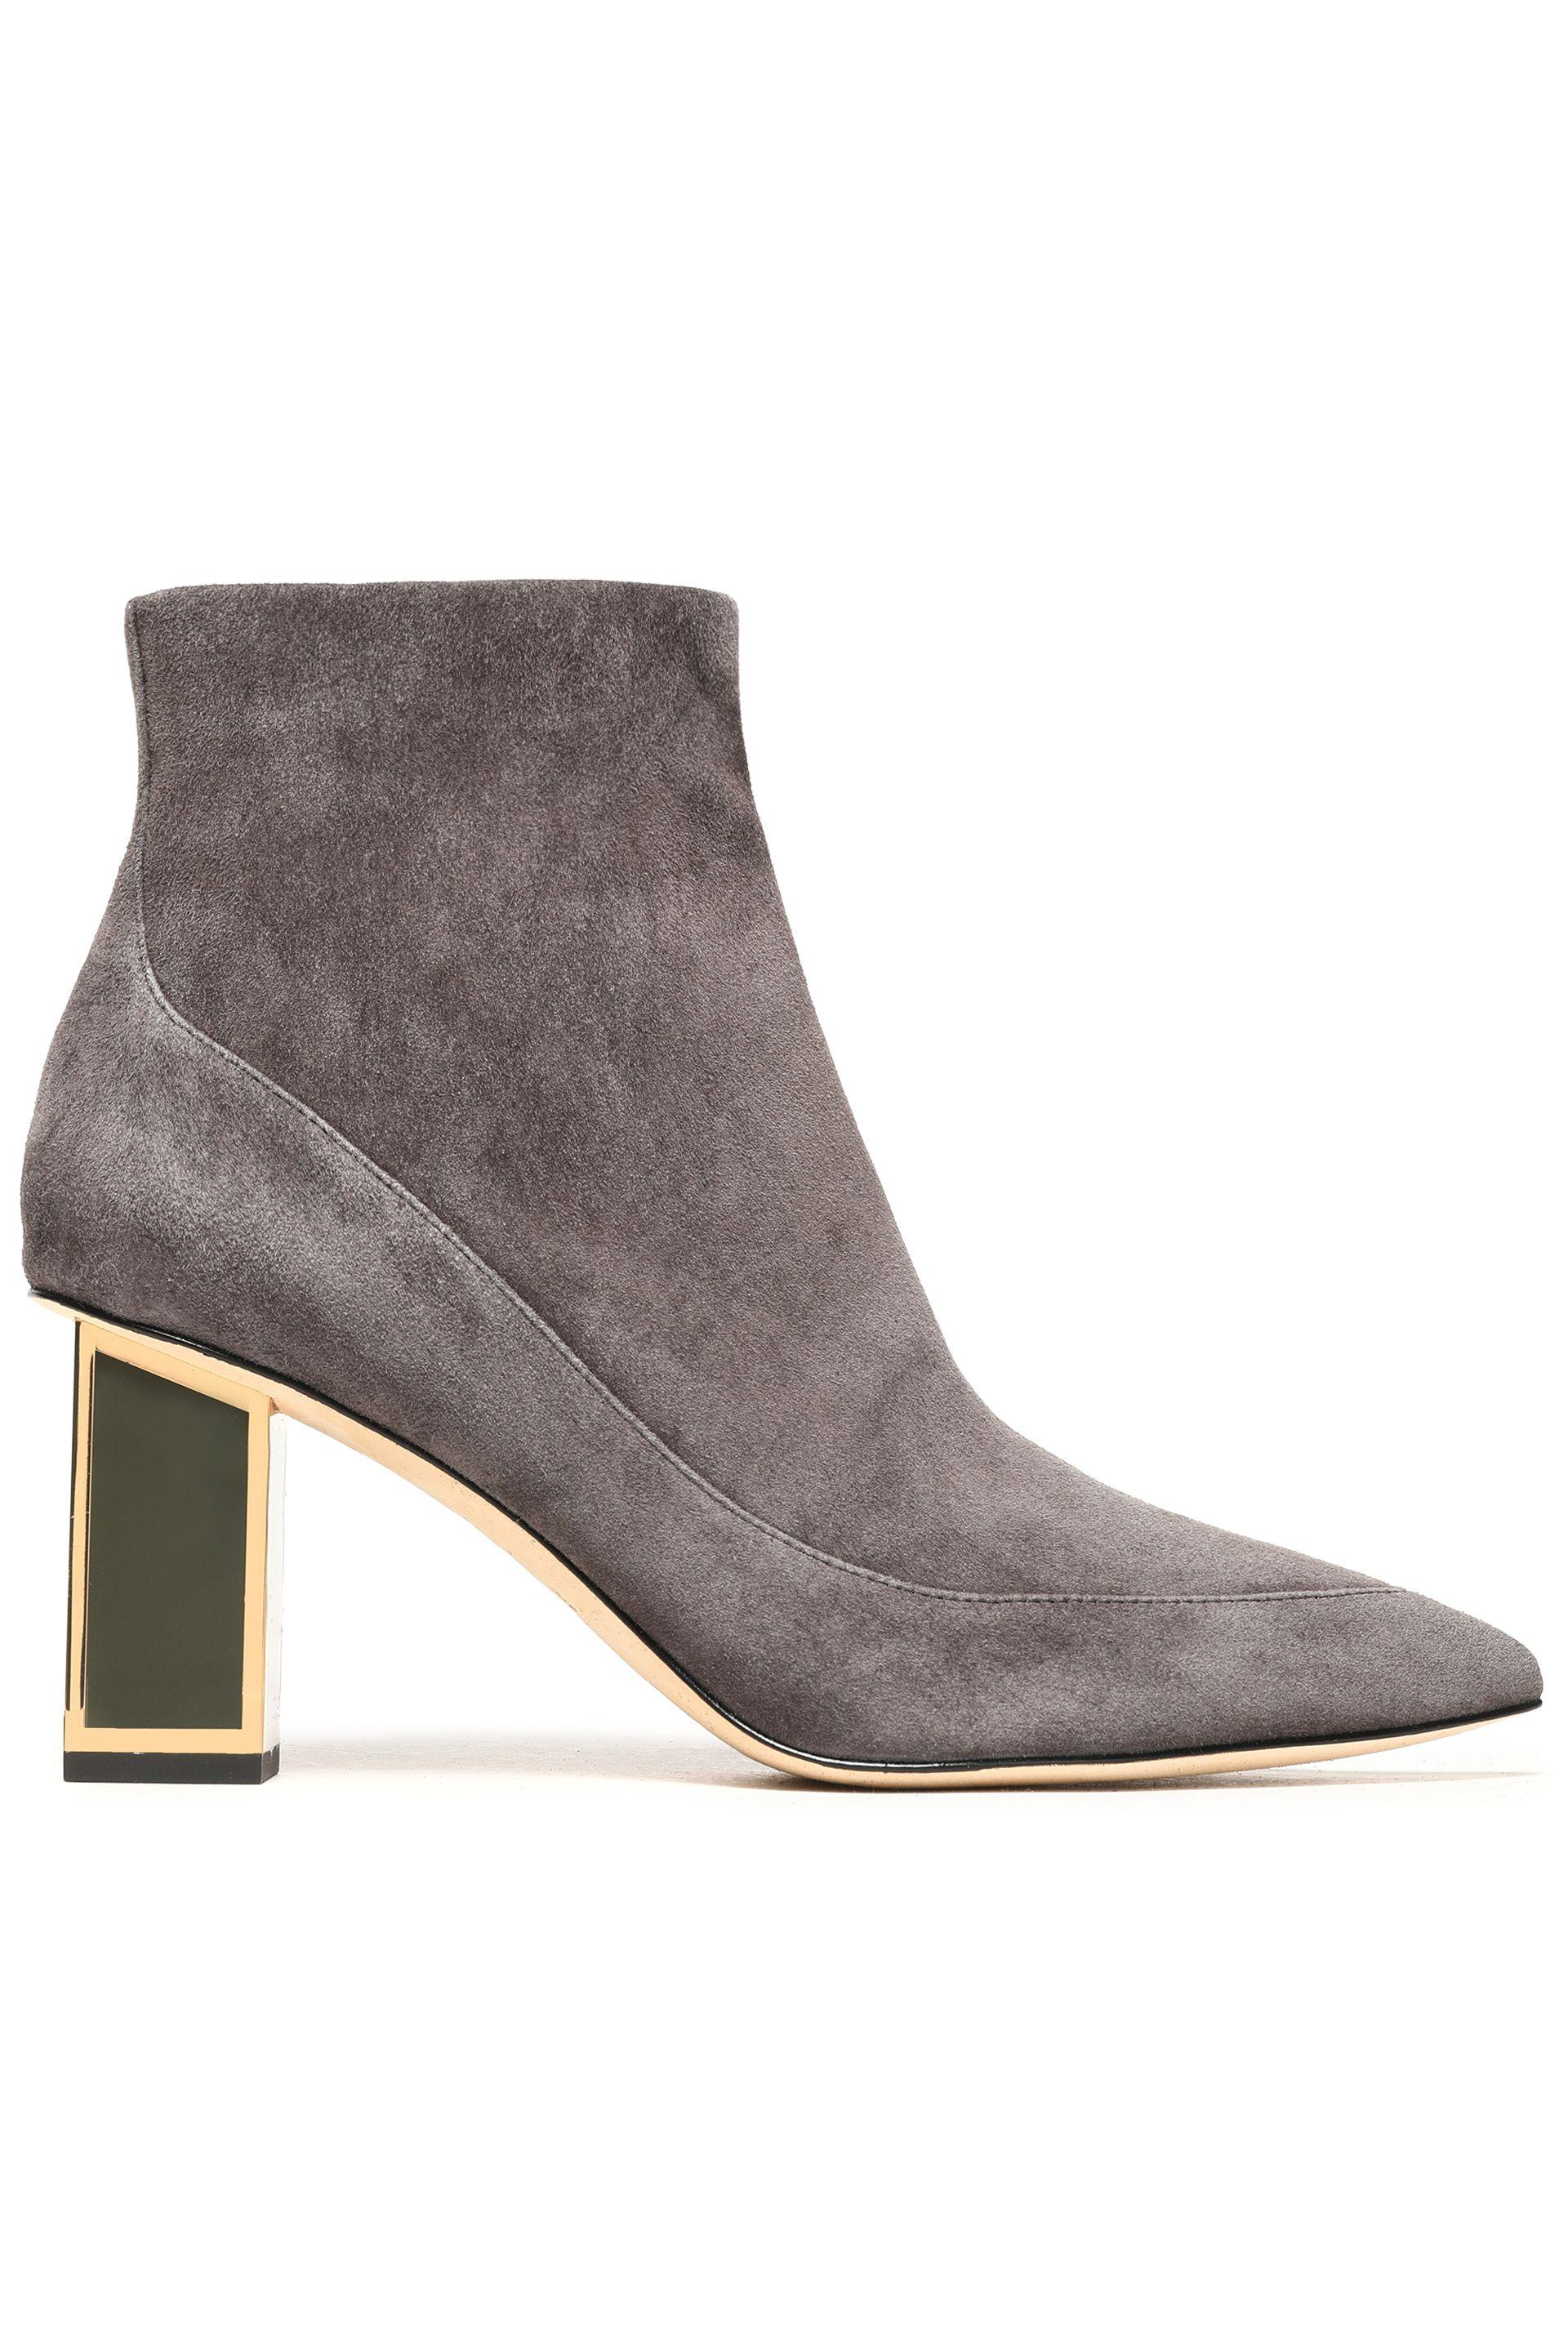 Diane von Furstenberg Suede Pointed-Toe Ankle Boots cheap sale real UkheW3DuUv